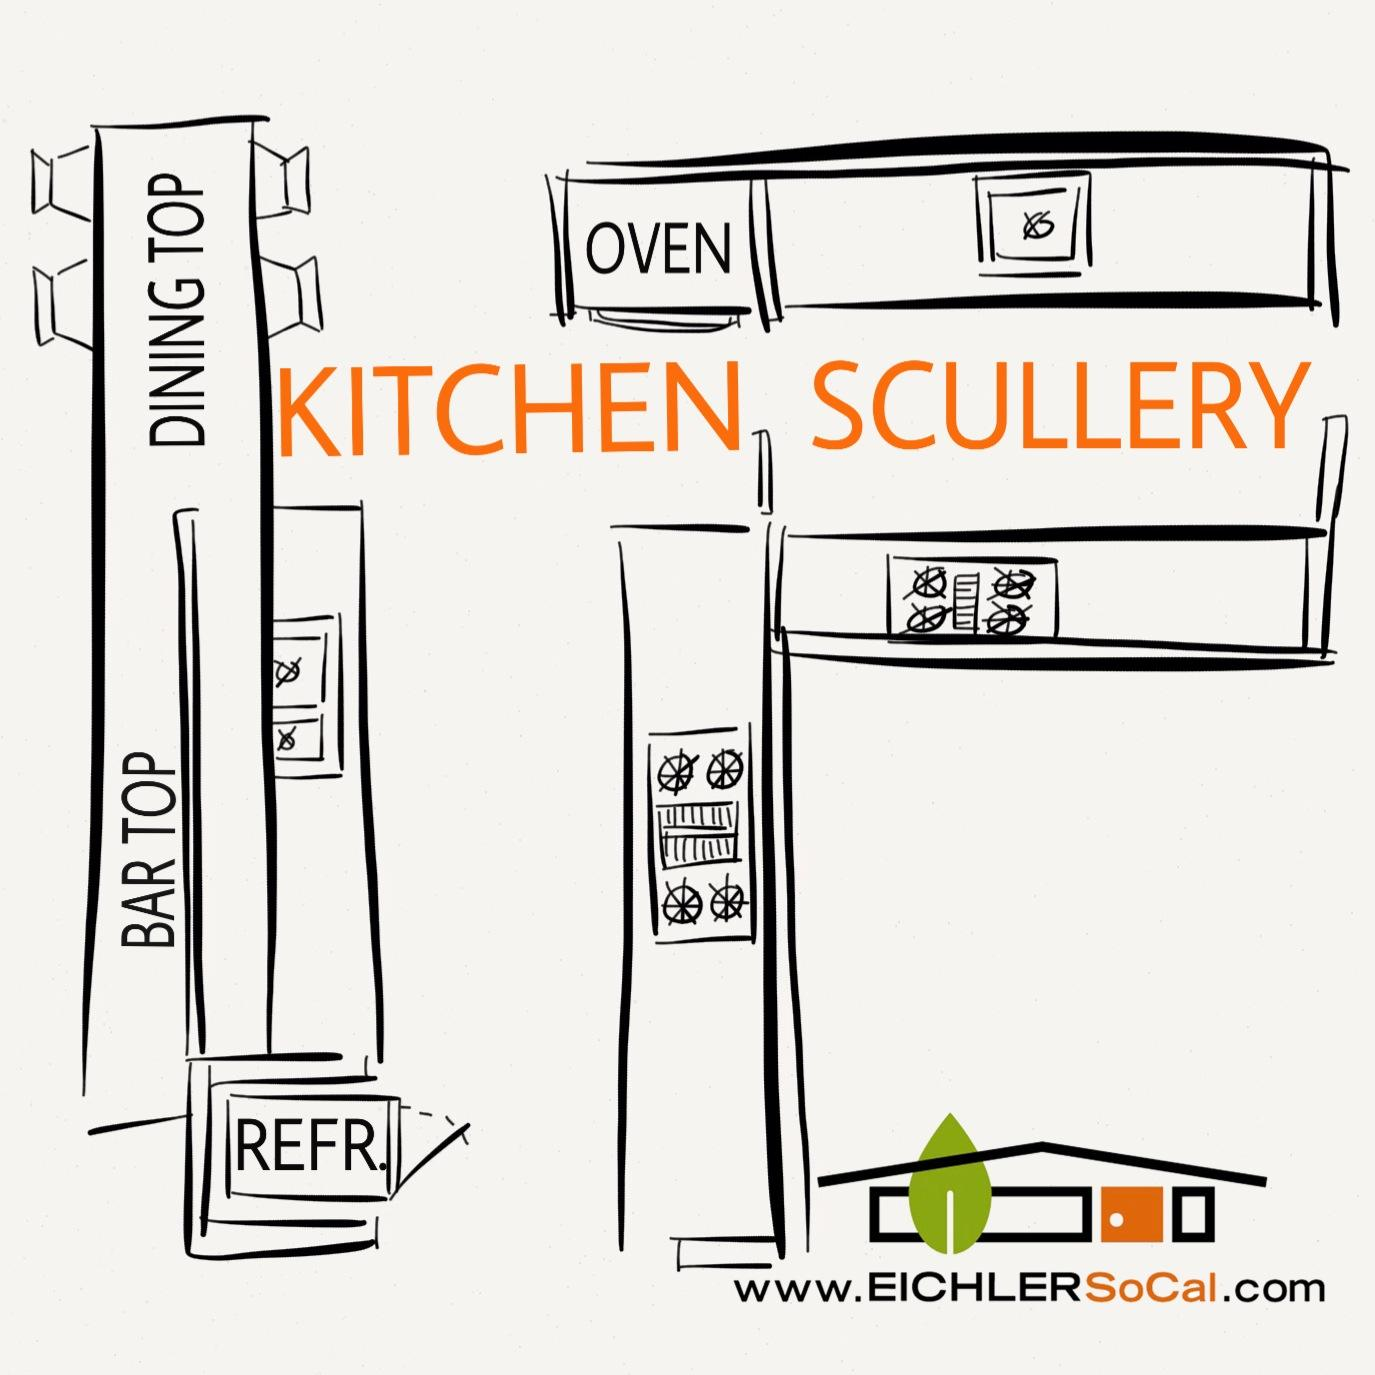 House plans scullery nzymes